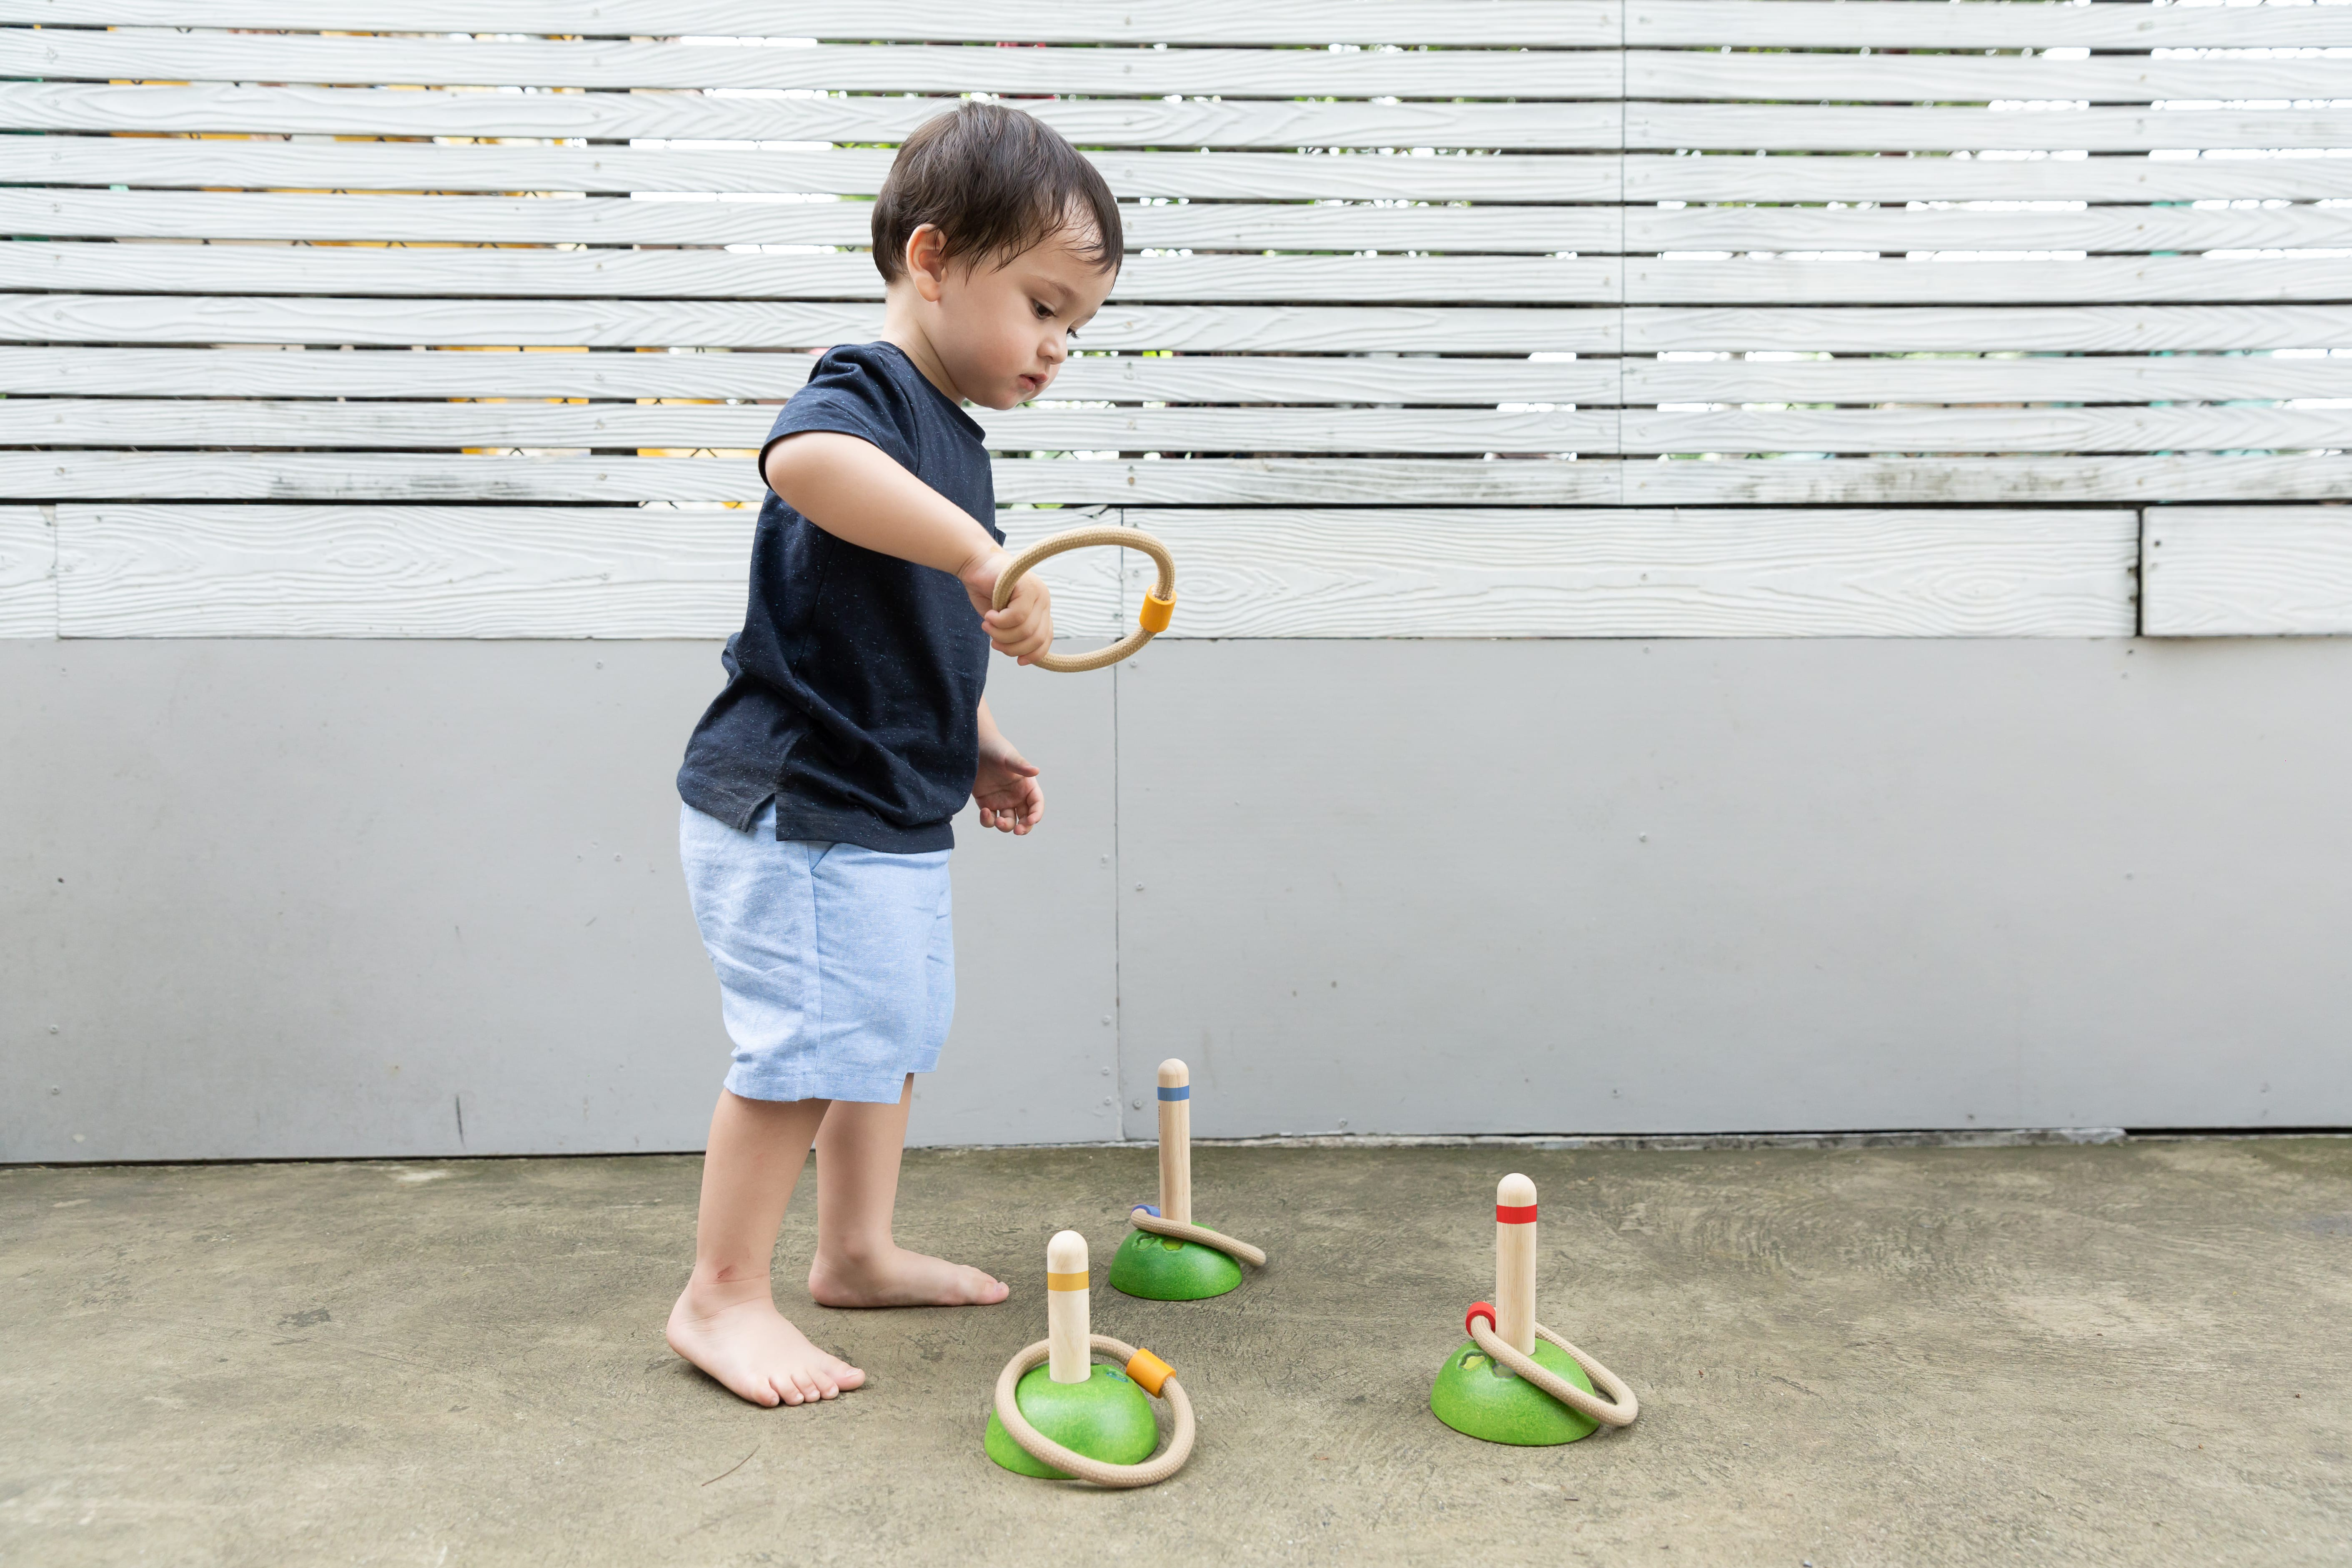 5652_PlanToys_MEADOW_RING_TOSS_Active_Play_Gross_Motor_Coordination_Social_Concentration_3yrs_Wooden_toys_Education_toys_Safety_Toys_Non-toxic_3.jpg